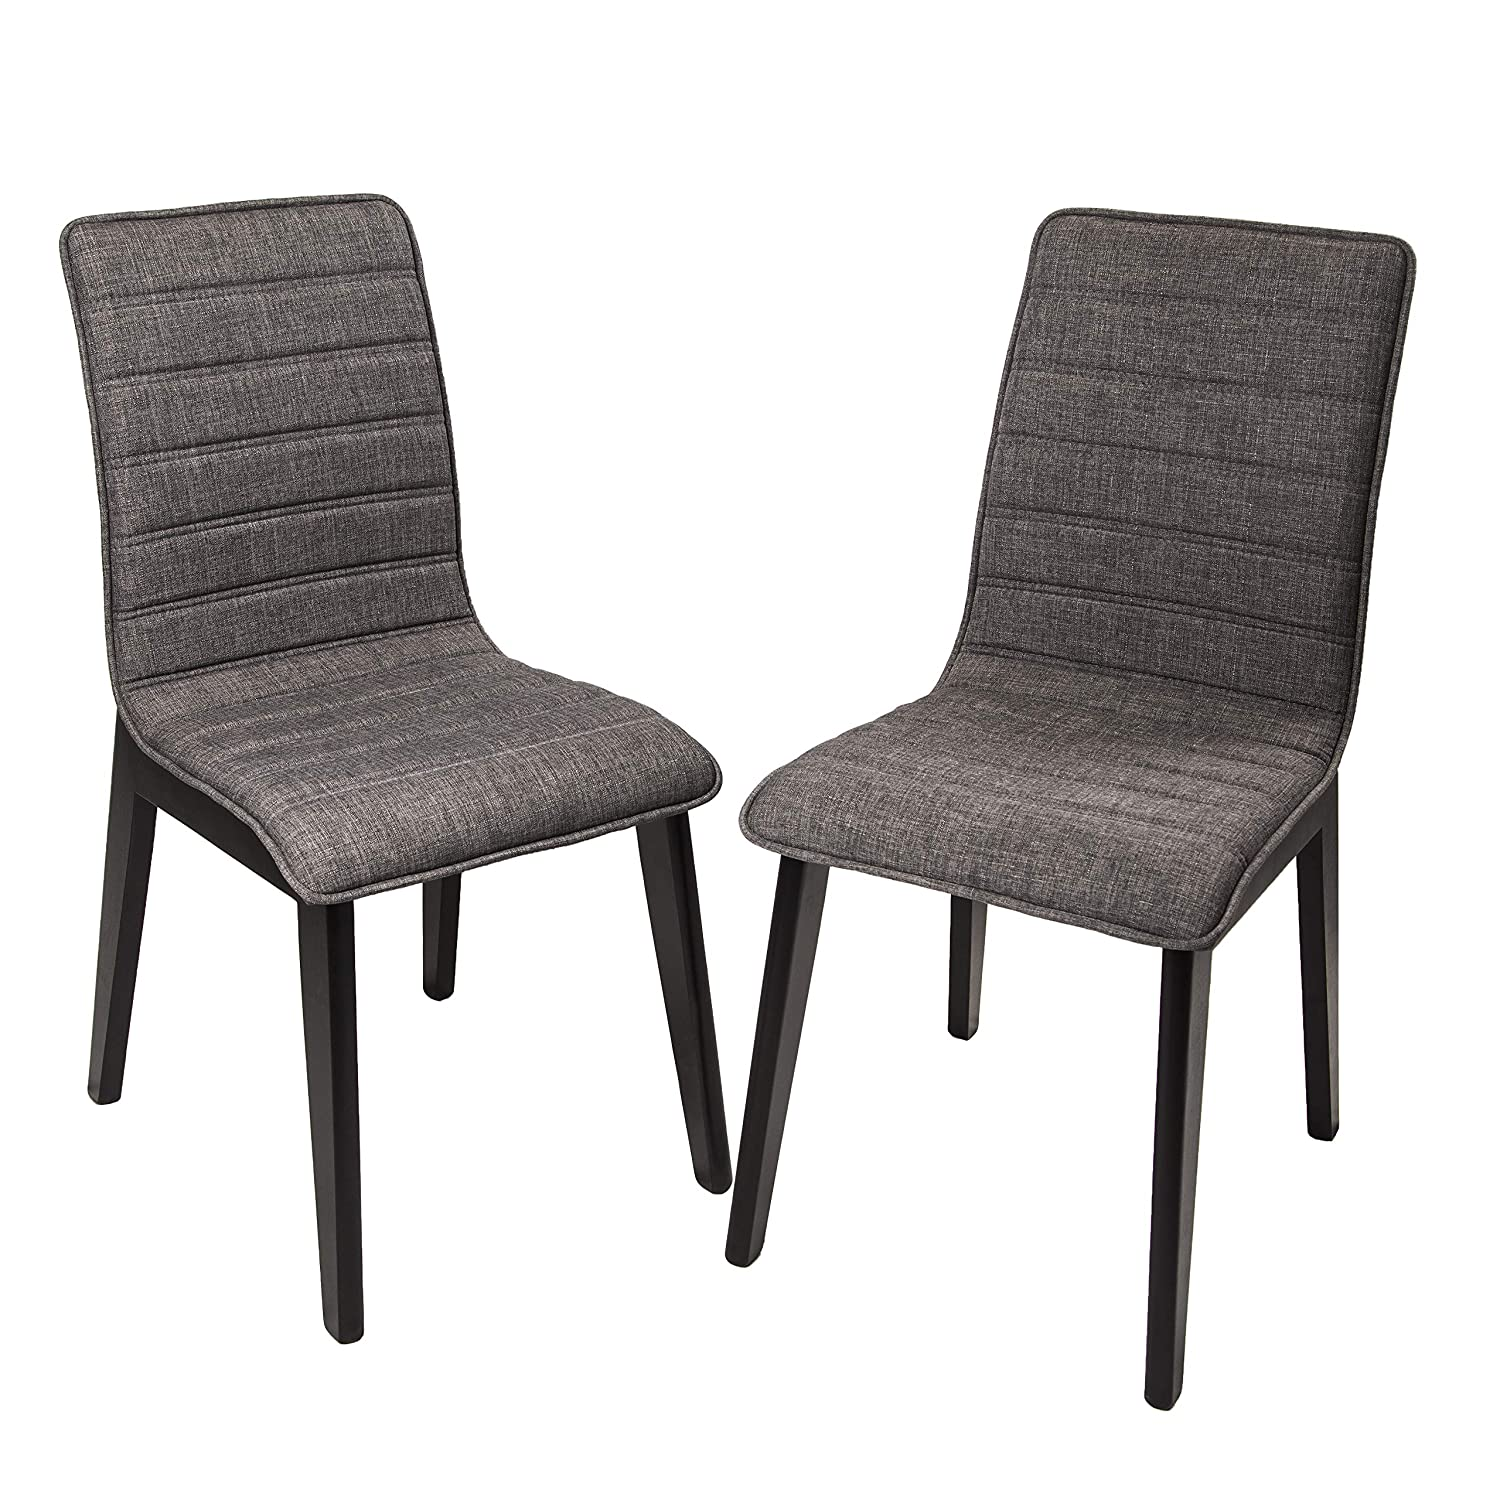 FUNCASH Dining Chairs, Set of 2 Dining Room Chair Grey Fabric Cushion Side Chairs with Sturdy Metal Legs, Mid Century Modern Chairs for Kitchen, Dining, Bedroom, Living Room